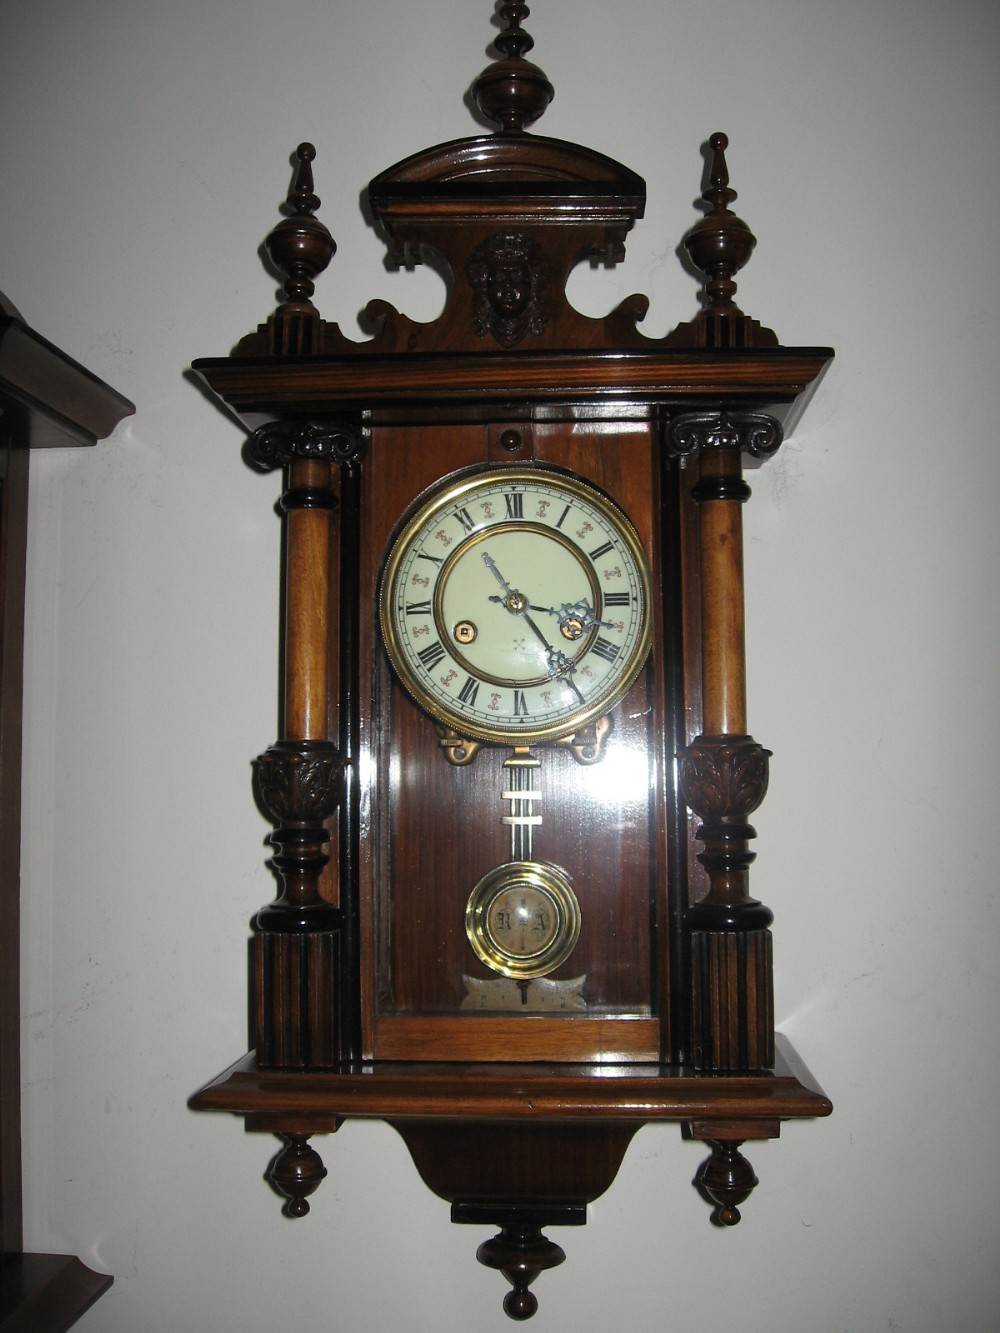 The Antique Wall Clocks